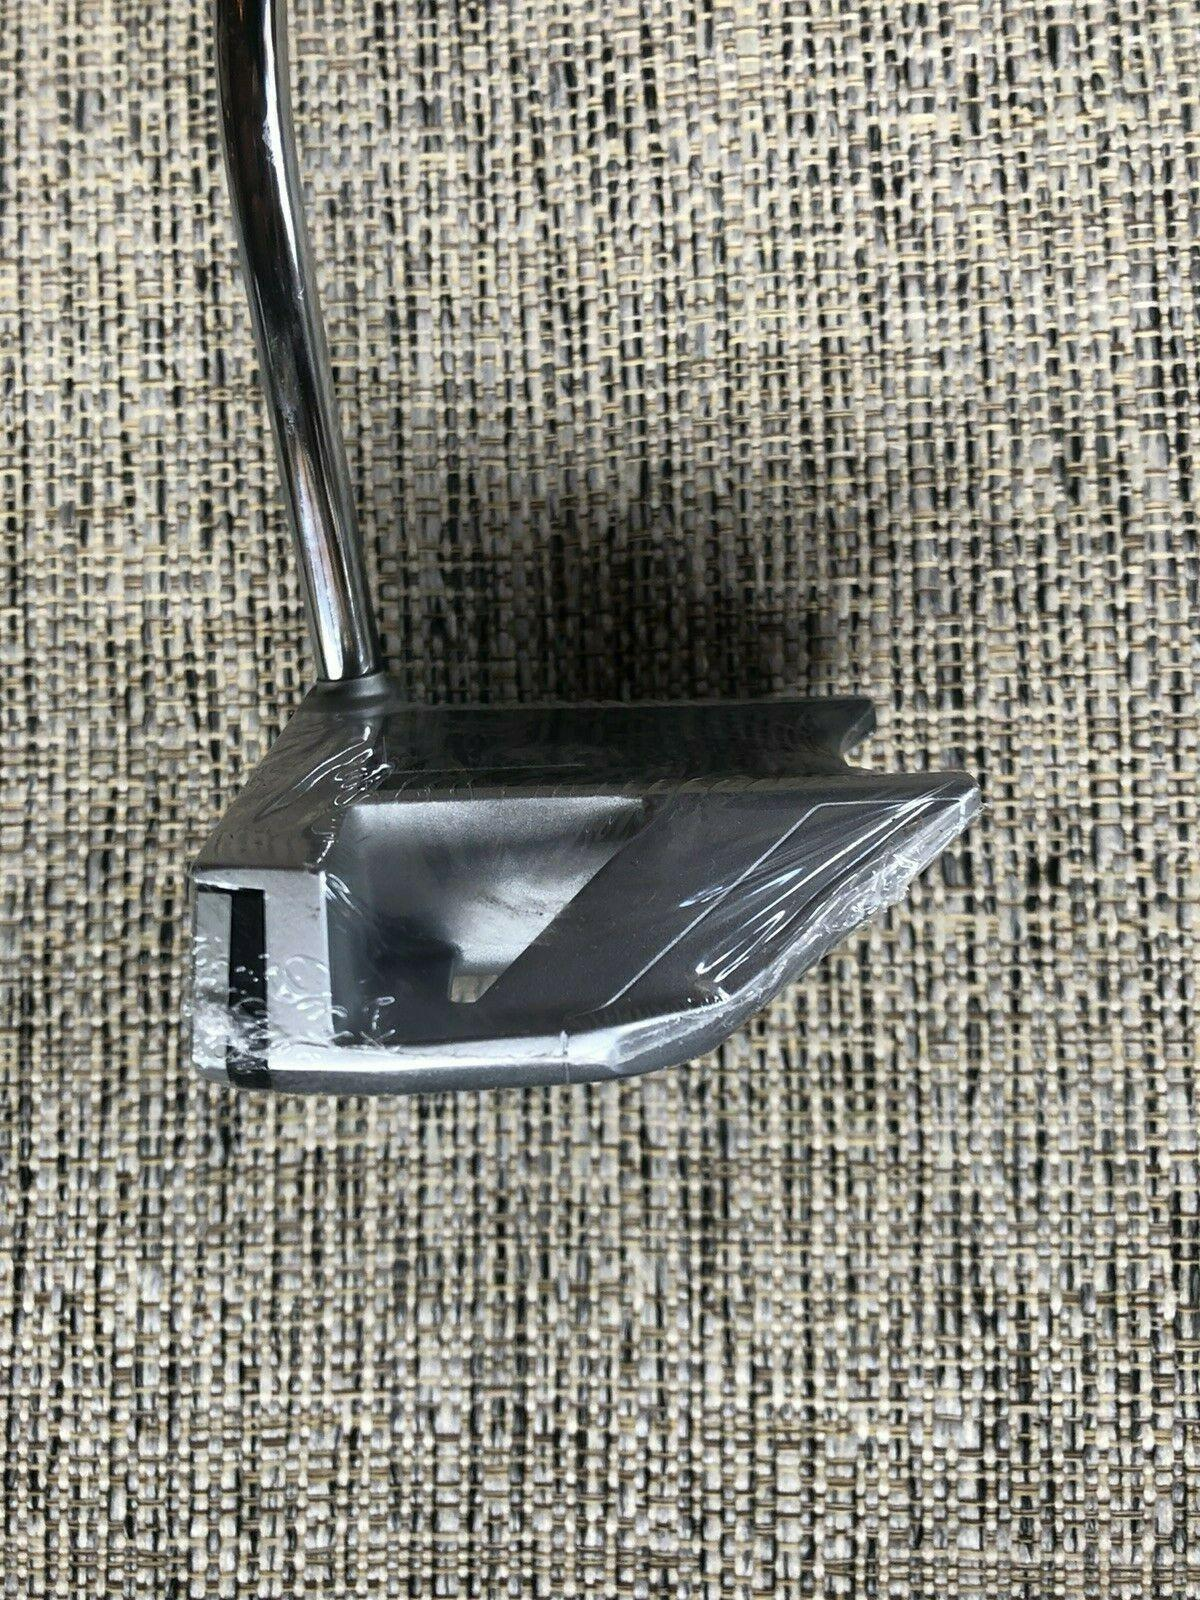 """BRAND NEW! 2135 RHO 34"""" Right Hand Putter"""